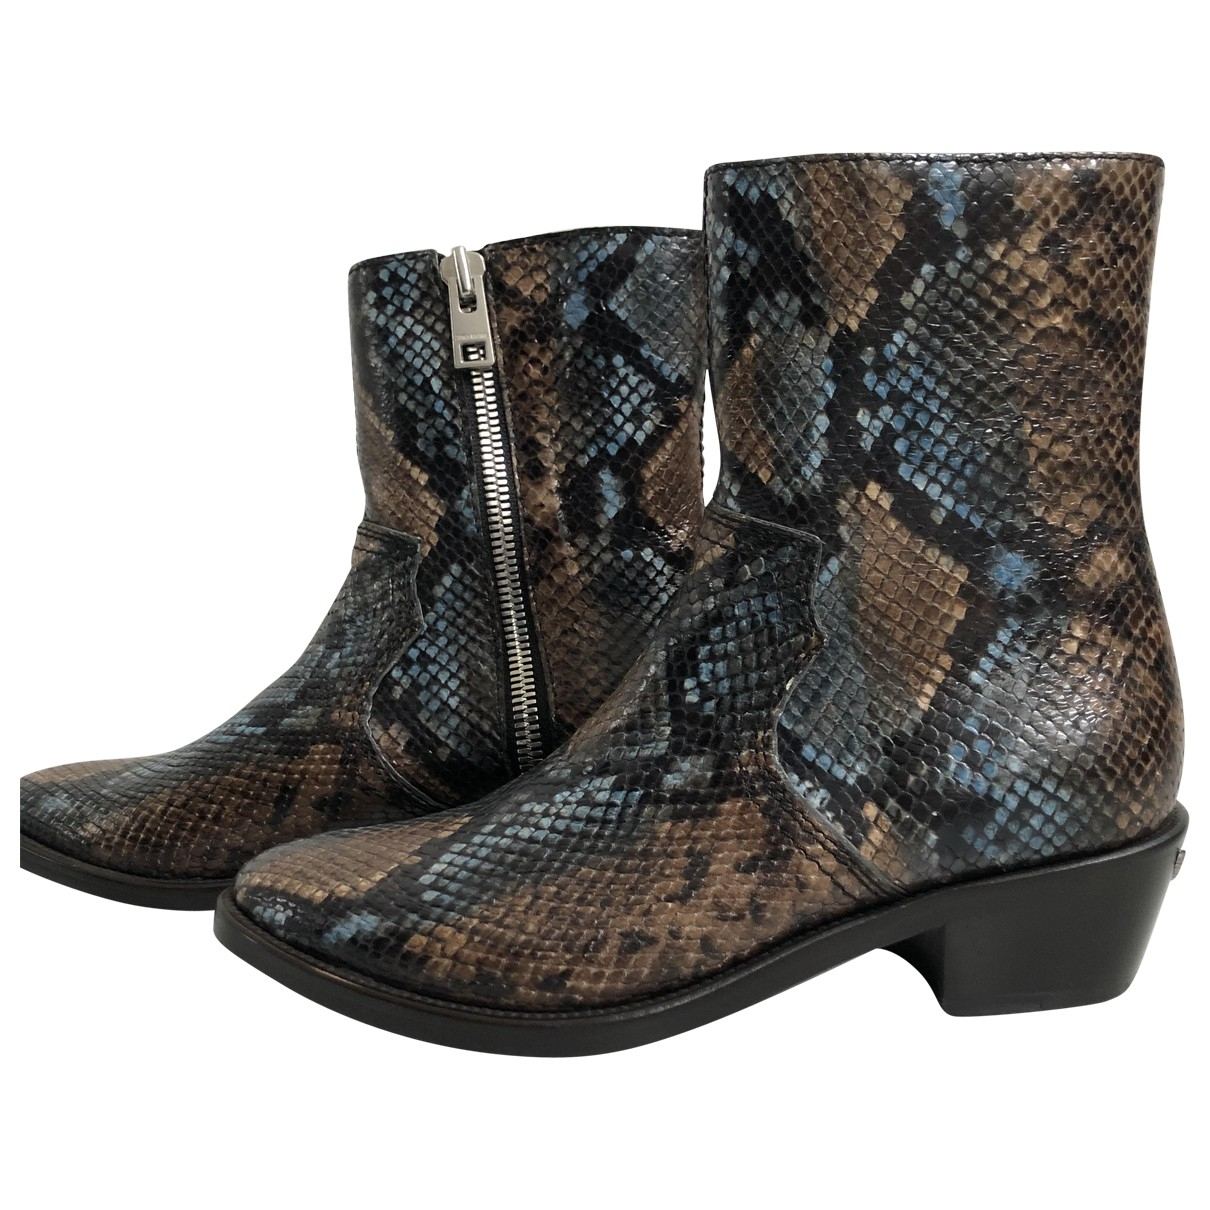 Zadig & Voltaire Pilar Brod Brown Leather Boots for Women 37 EU